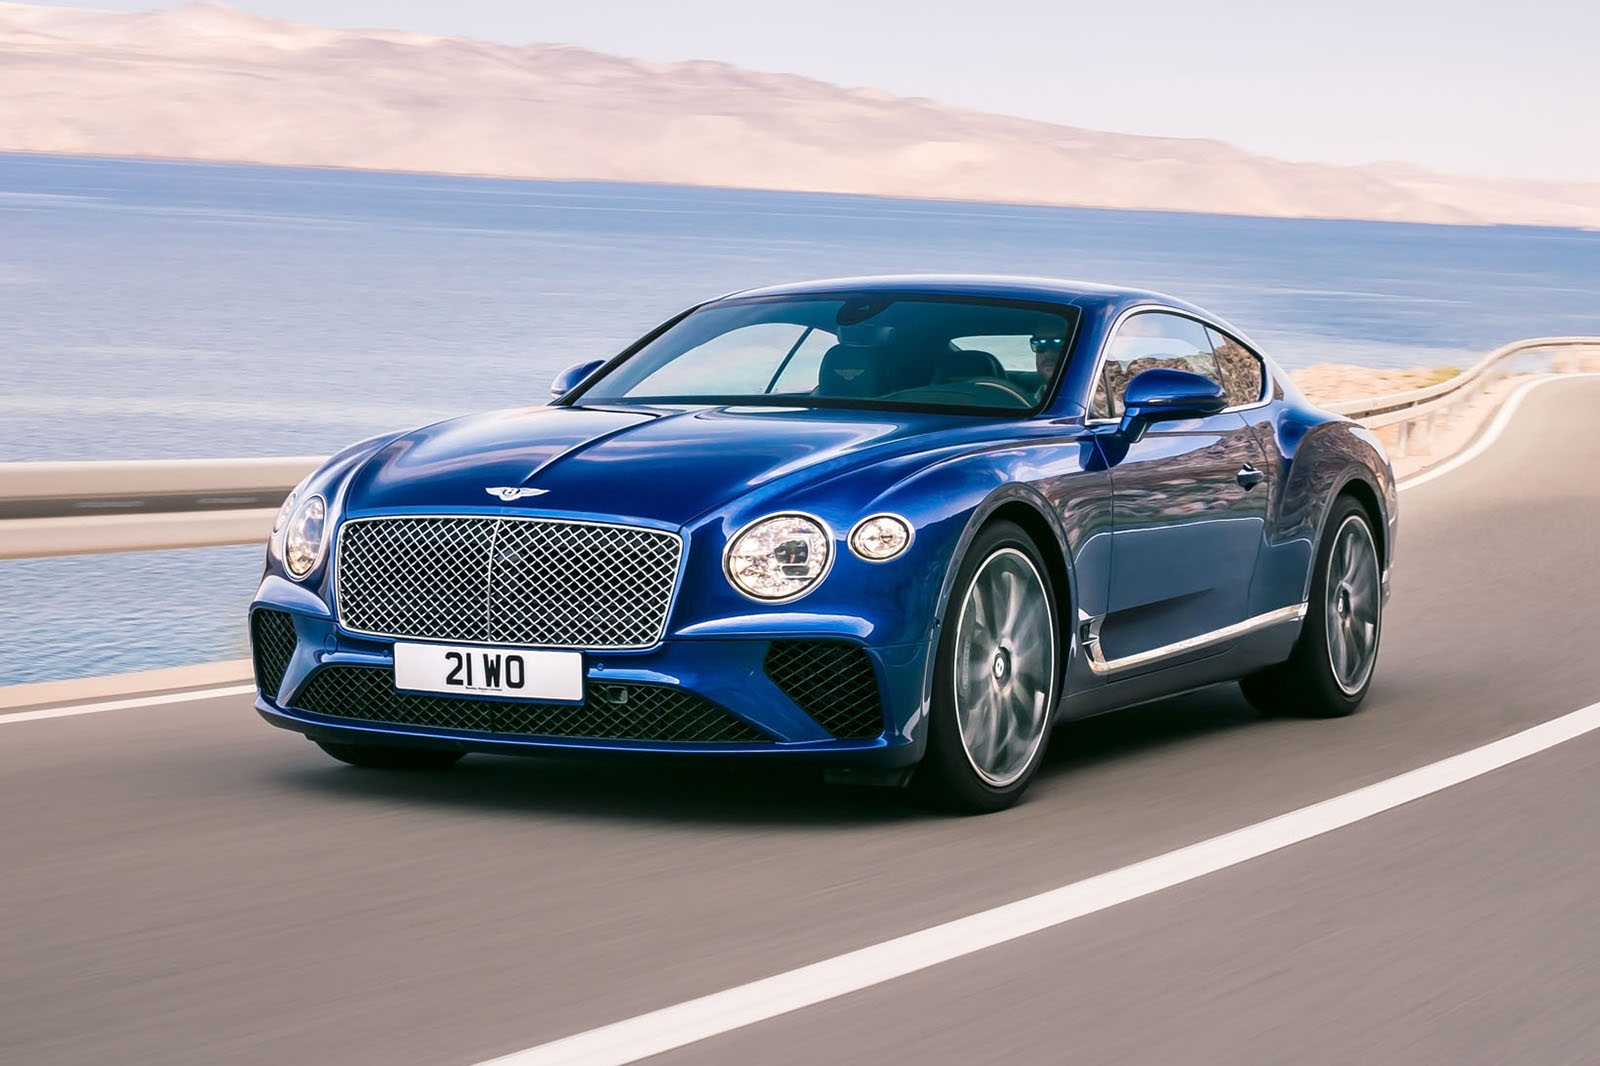 New Bentley Continental GT Revealed Full Specs And Video Autocar - Show me a bentley car